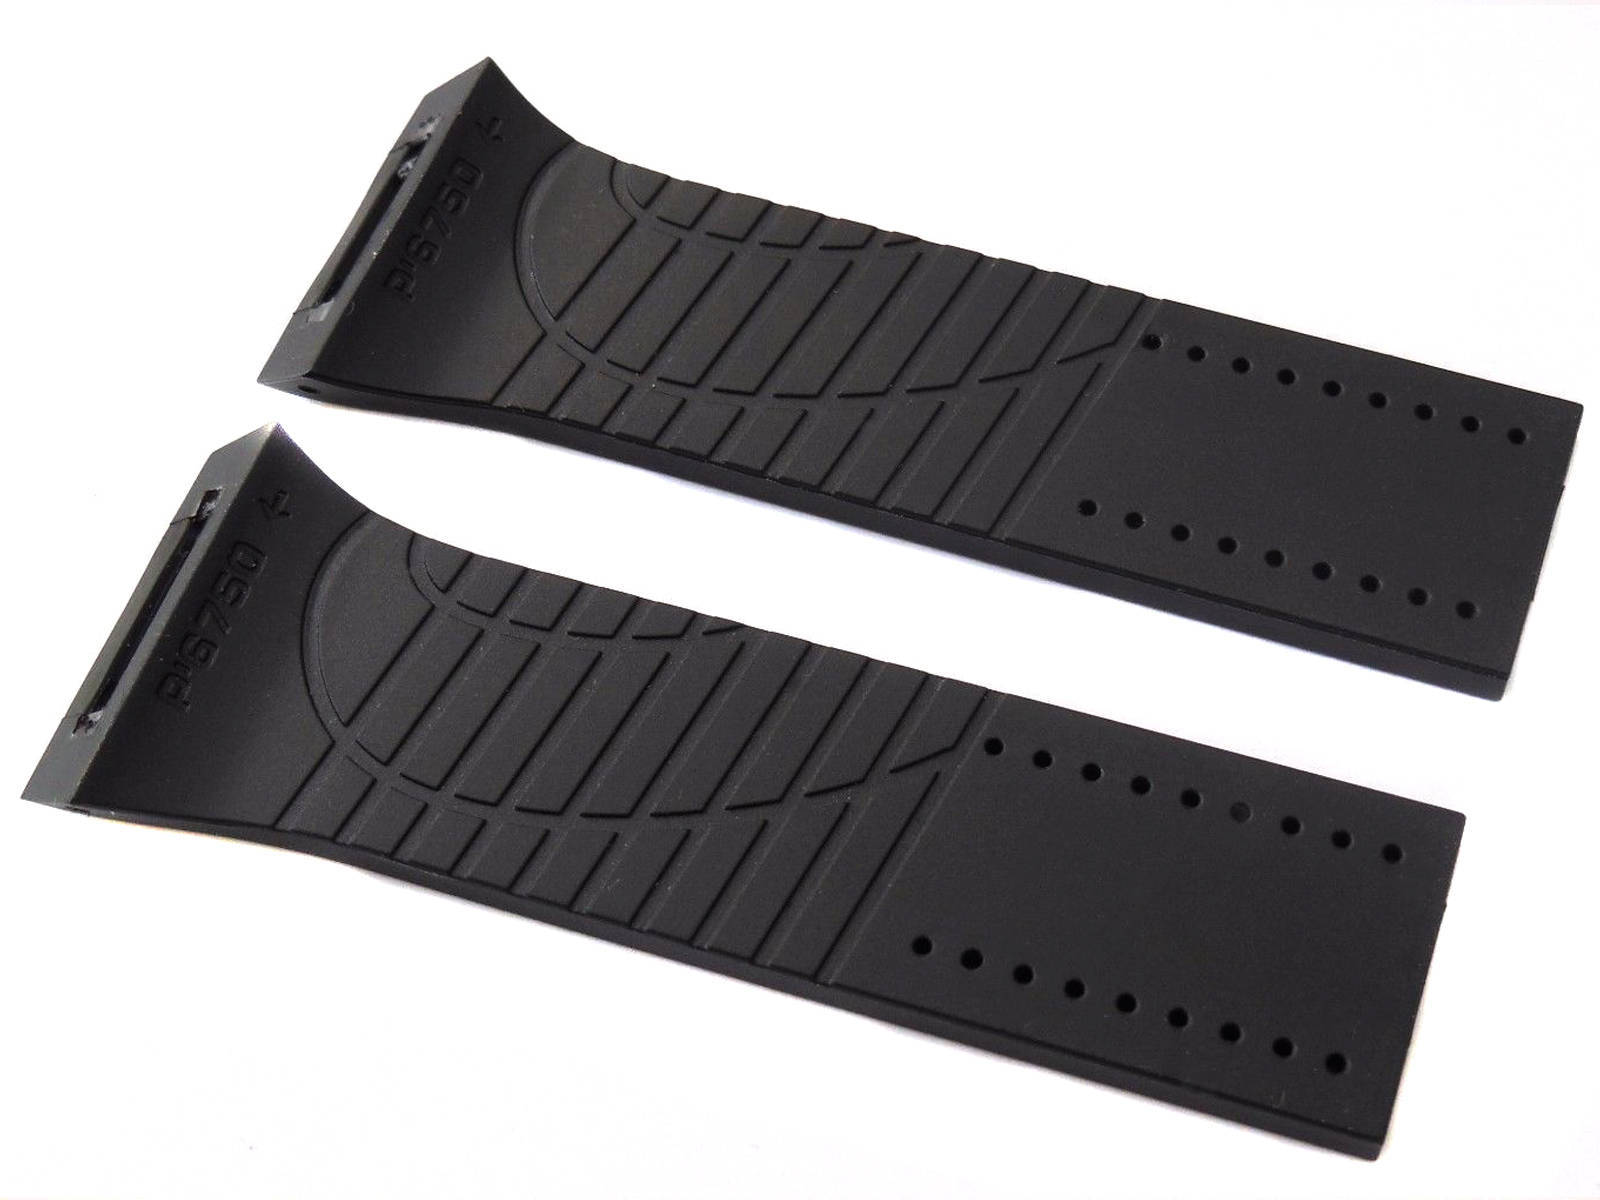 Black Rubber Watch Strap Band For Porsche Design P6750 P-6750 P 6750